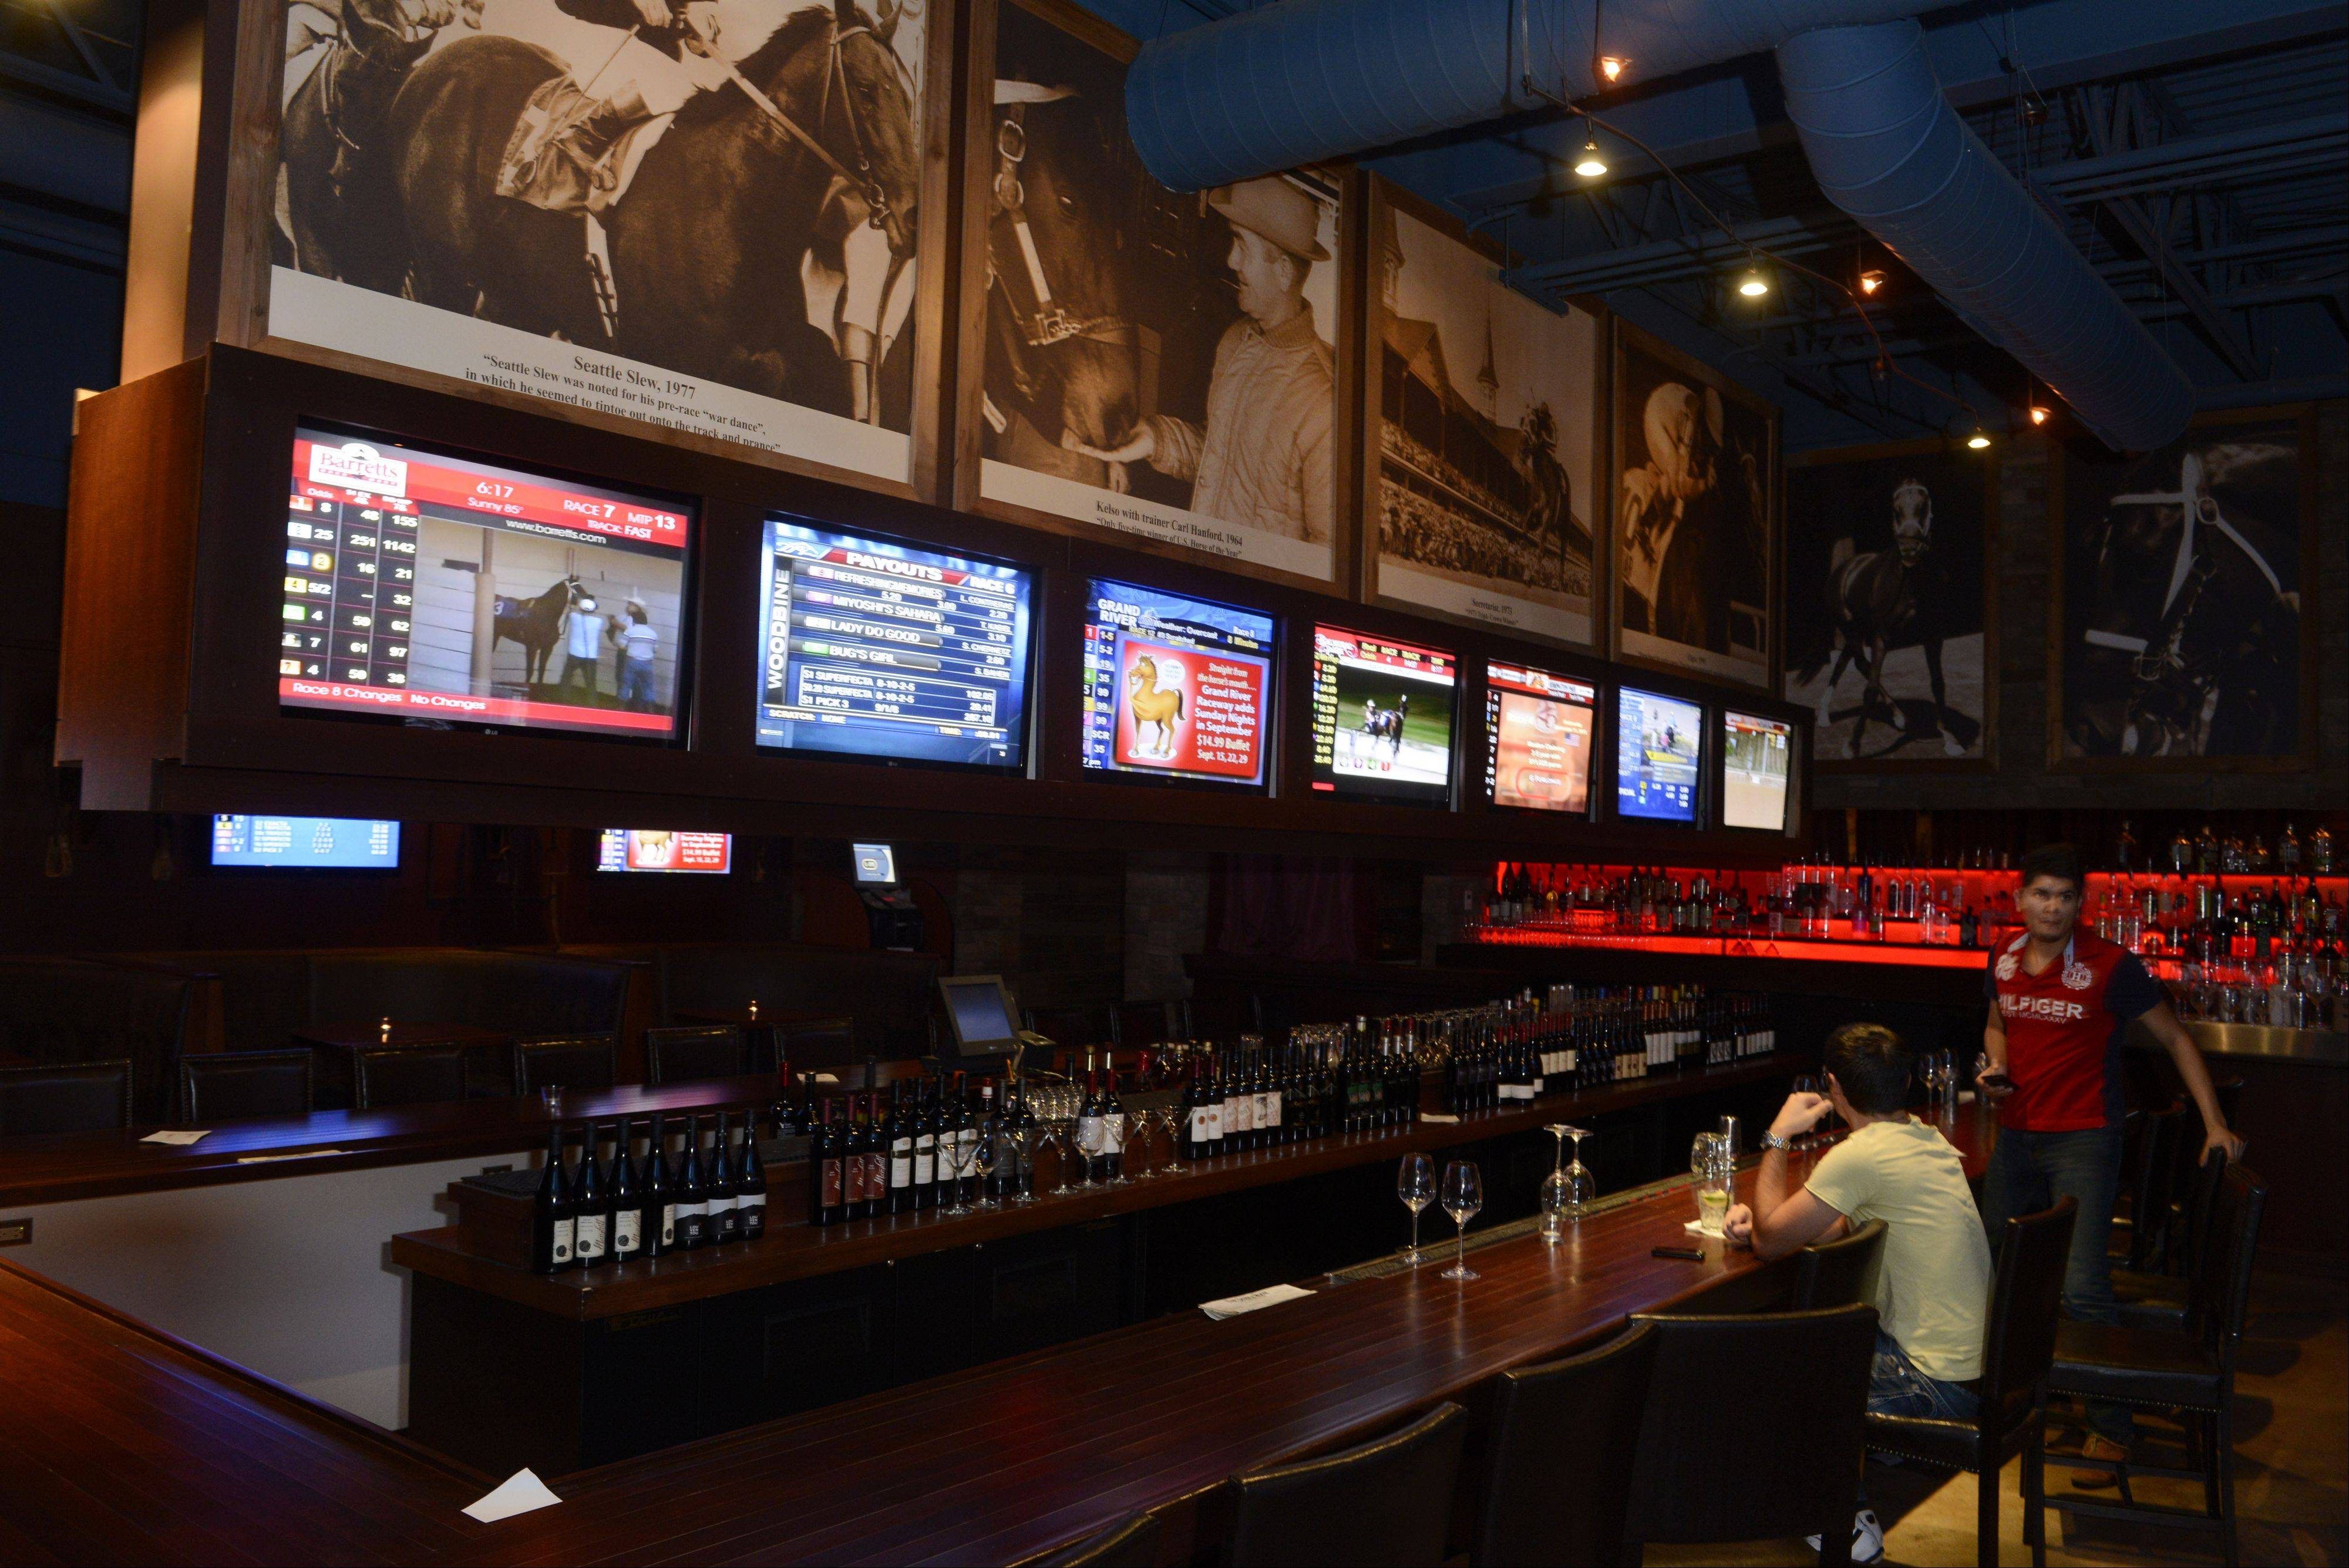 You can watch horse racing and place bets at The Saddle Room in Hoffman Estates.